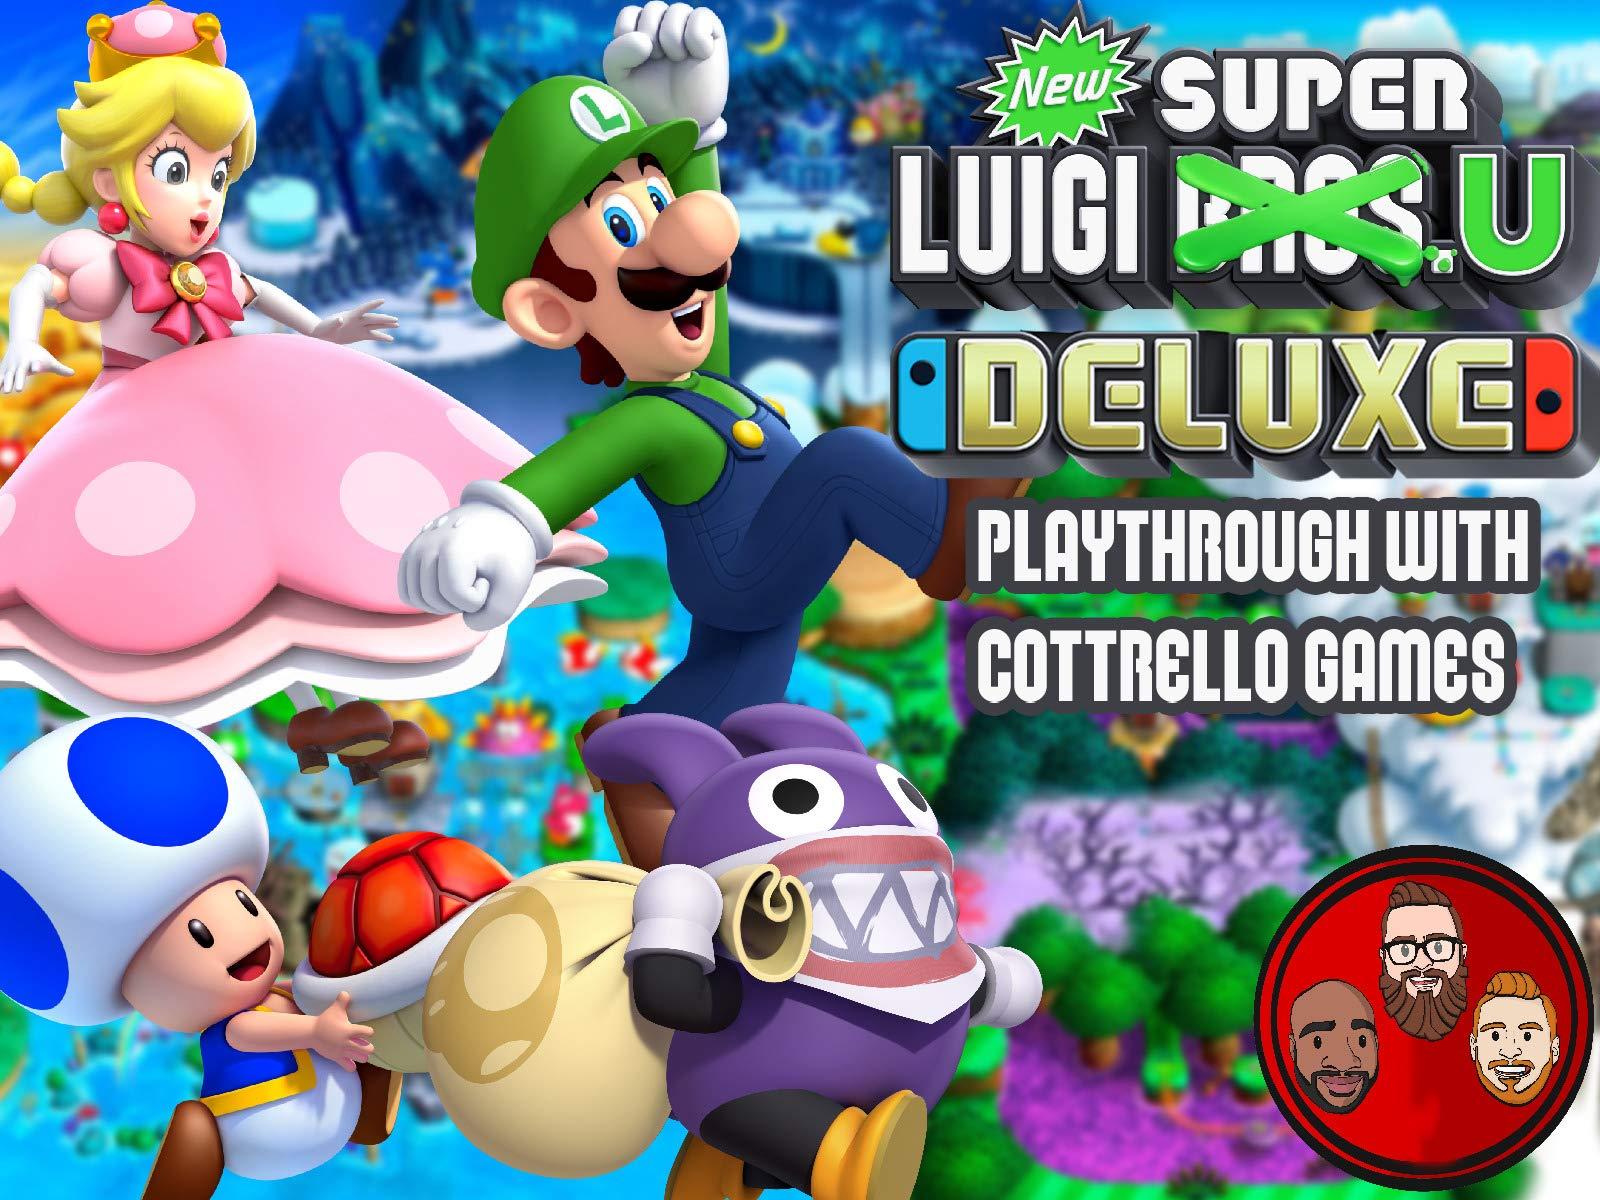 New Super Luigi U Deluxe Playthrough with Cottrello Games